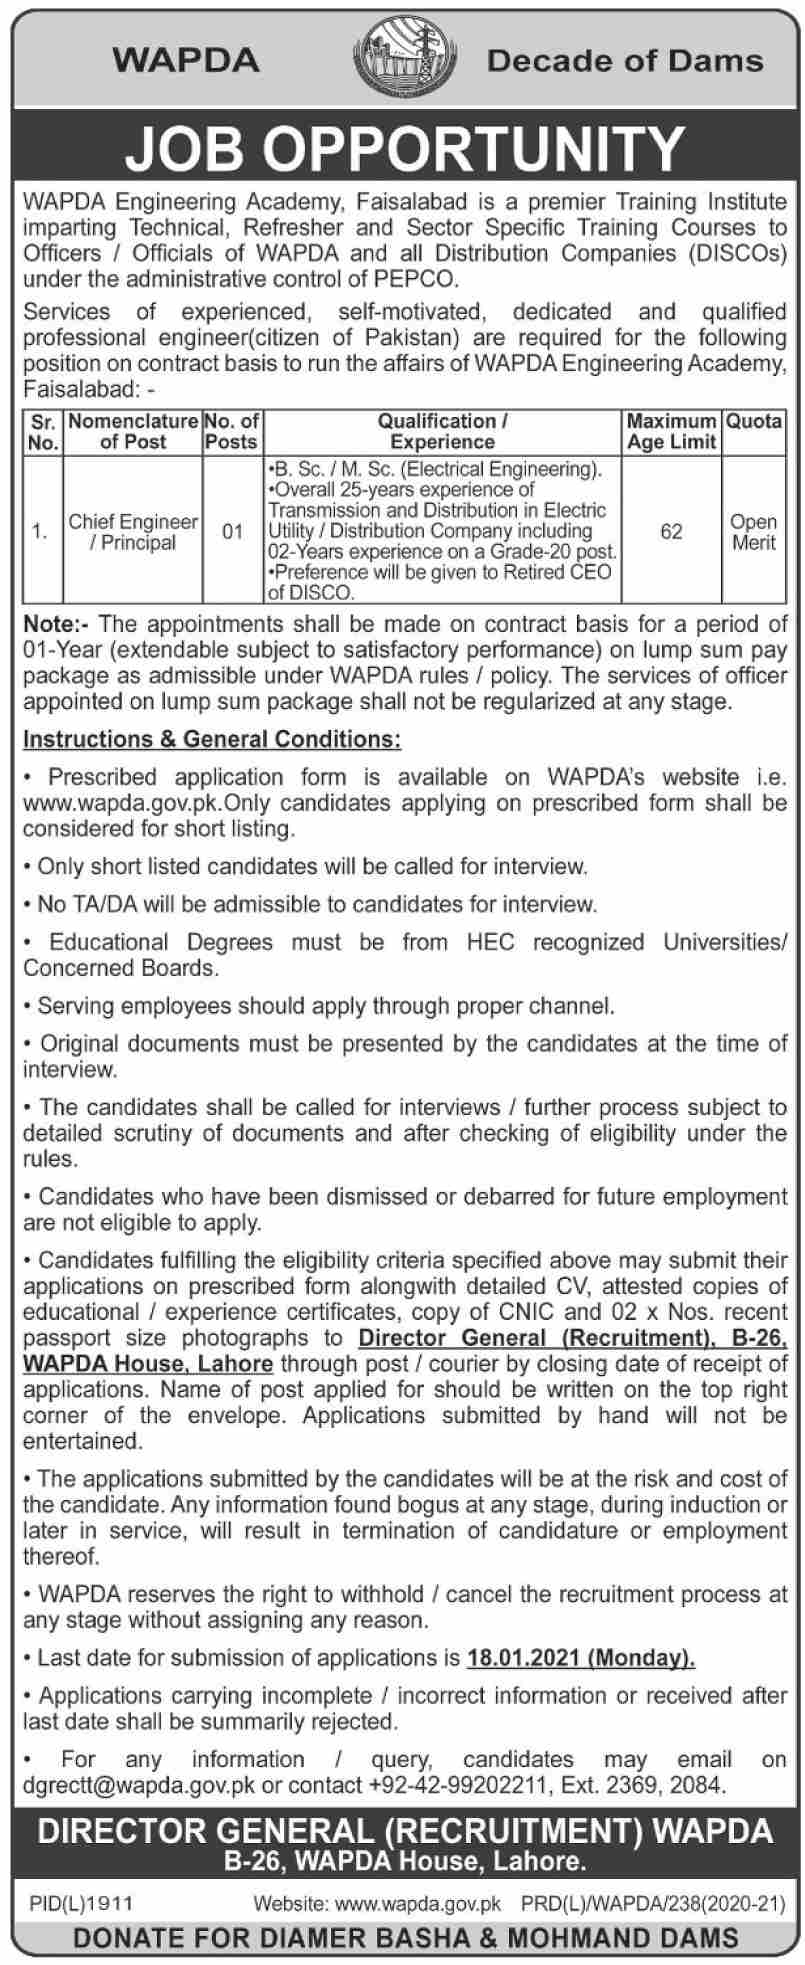 WAPDA Jobs 2021 - Latest Jobs in WAPDA (Apply Online) - Water And Power Development Authority Wapda Jobs 2021